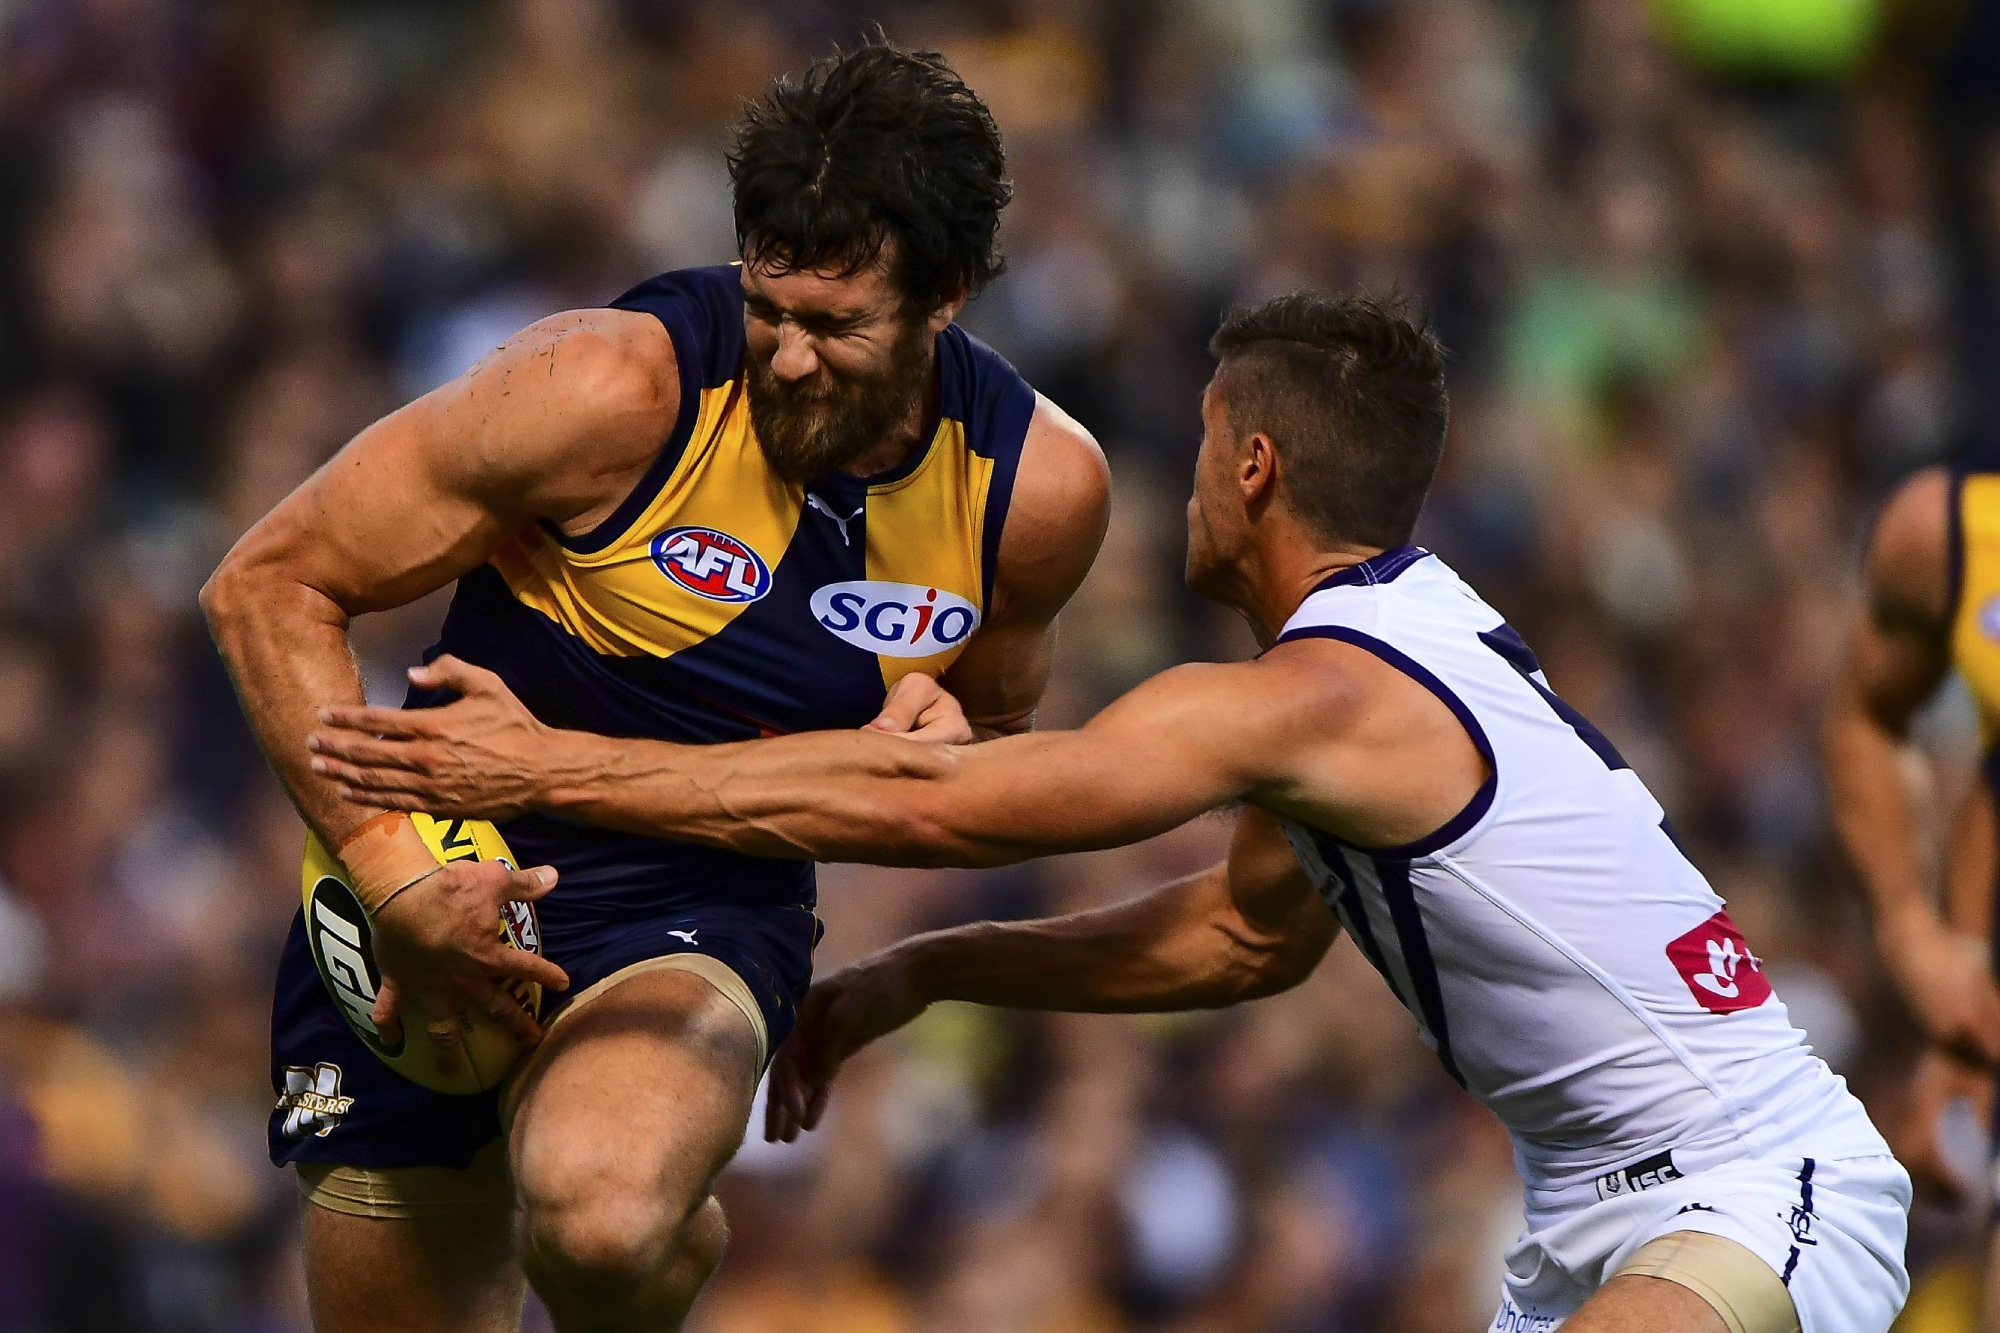 Josh Kennedy breaks past a tackle from Garrick Ibbotson during Derby 43 on Saturday night. Picture: Daniel Carson/AFL Media/Getty Images